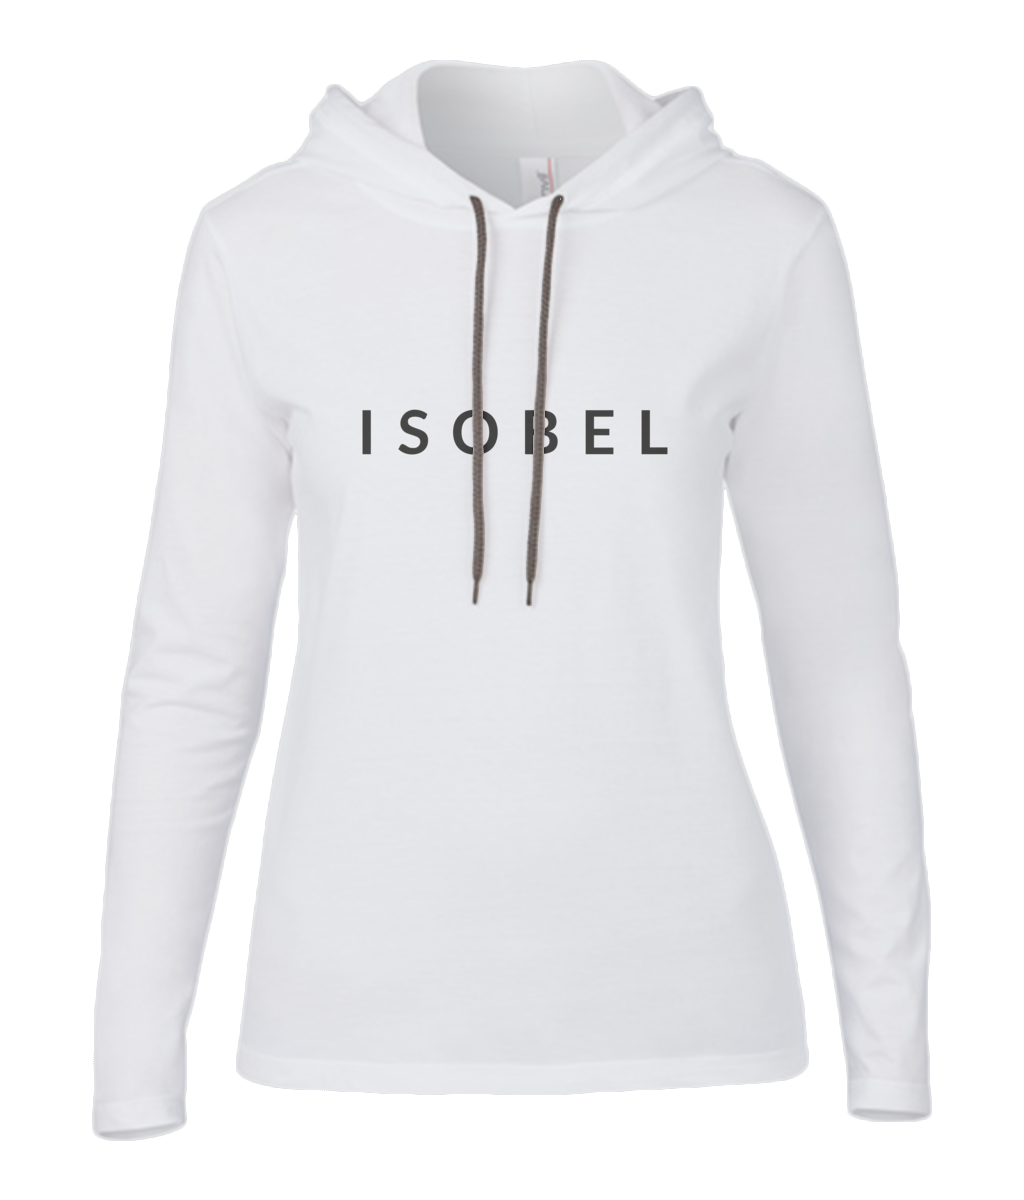 Long Sleeve Hooded ISOBEL T-Shirt